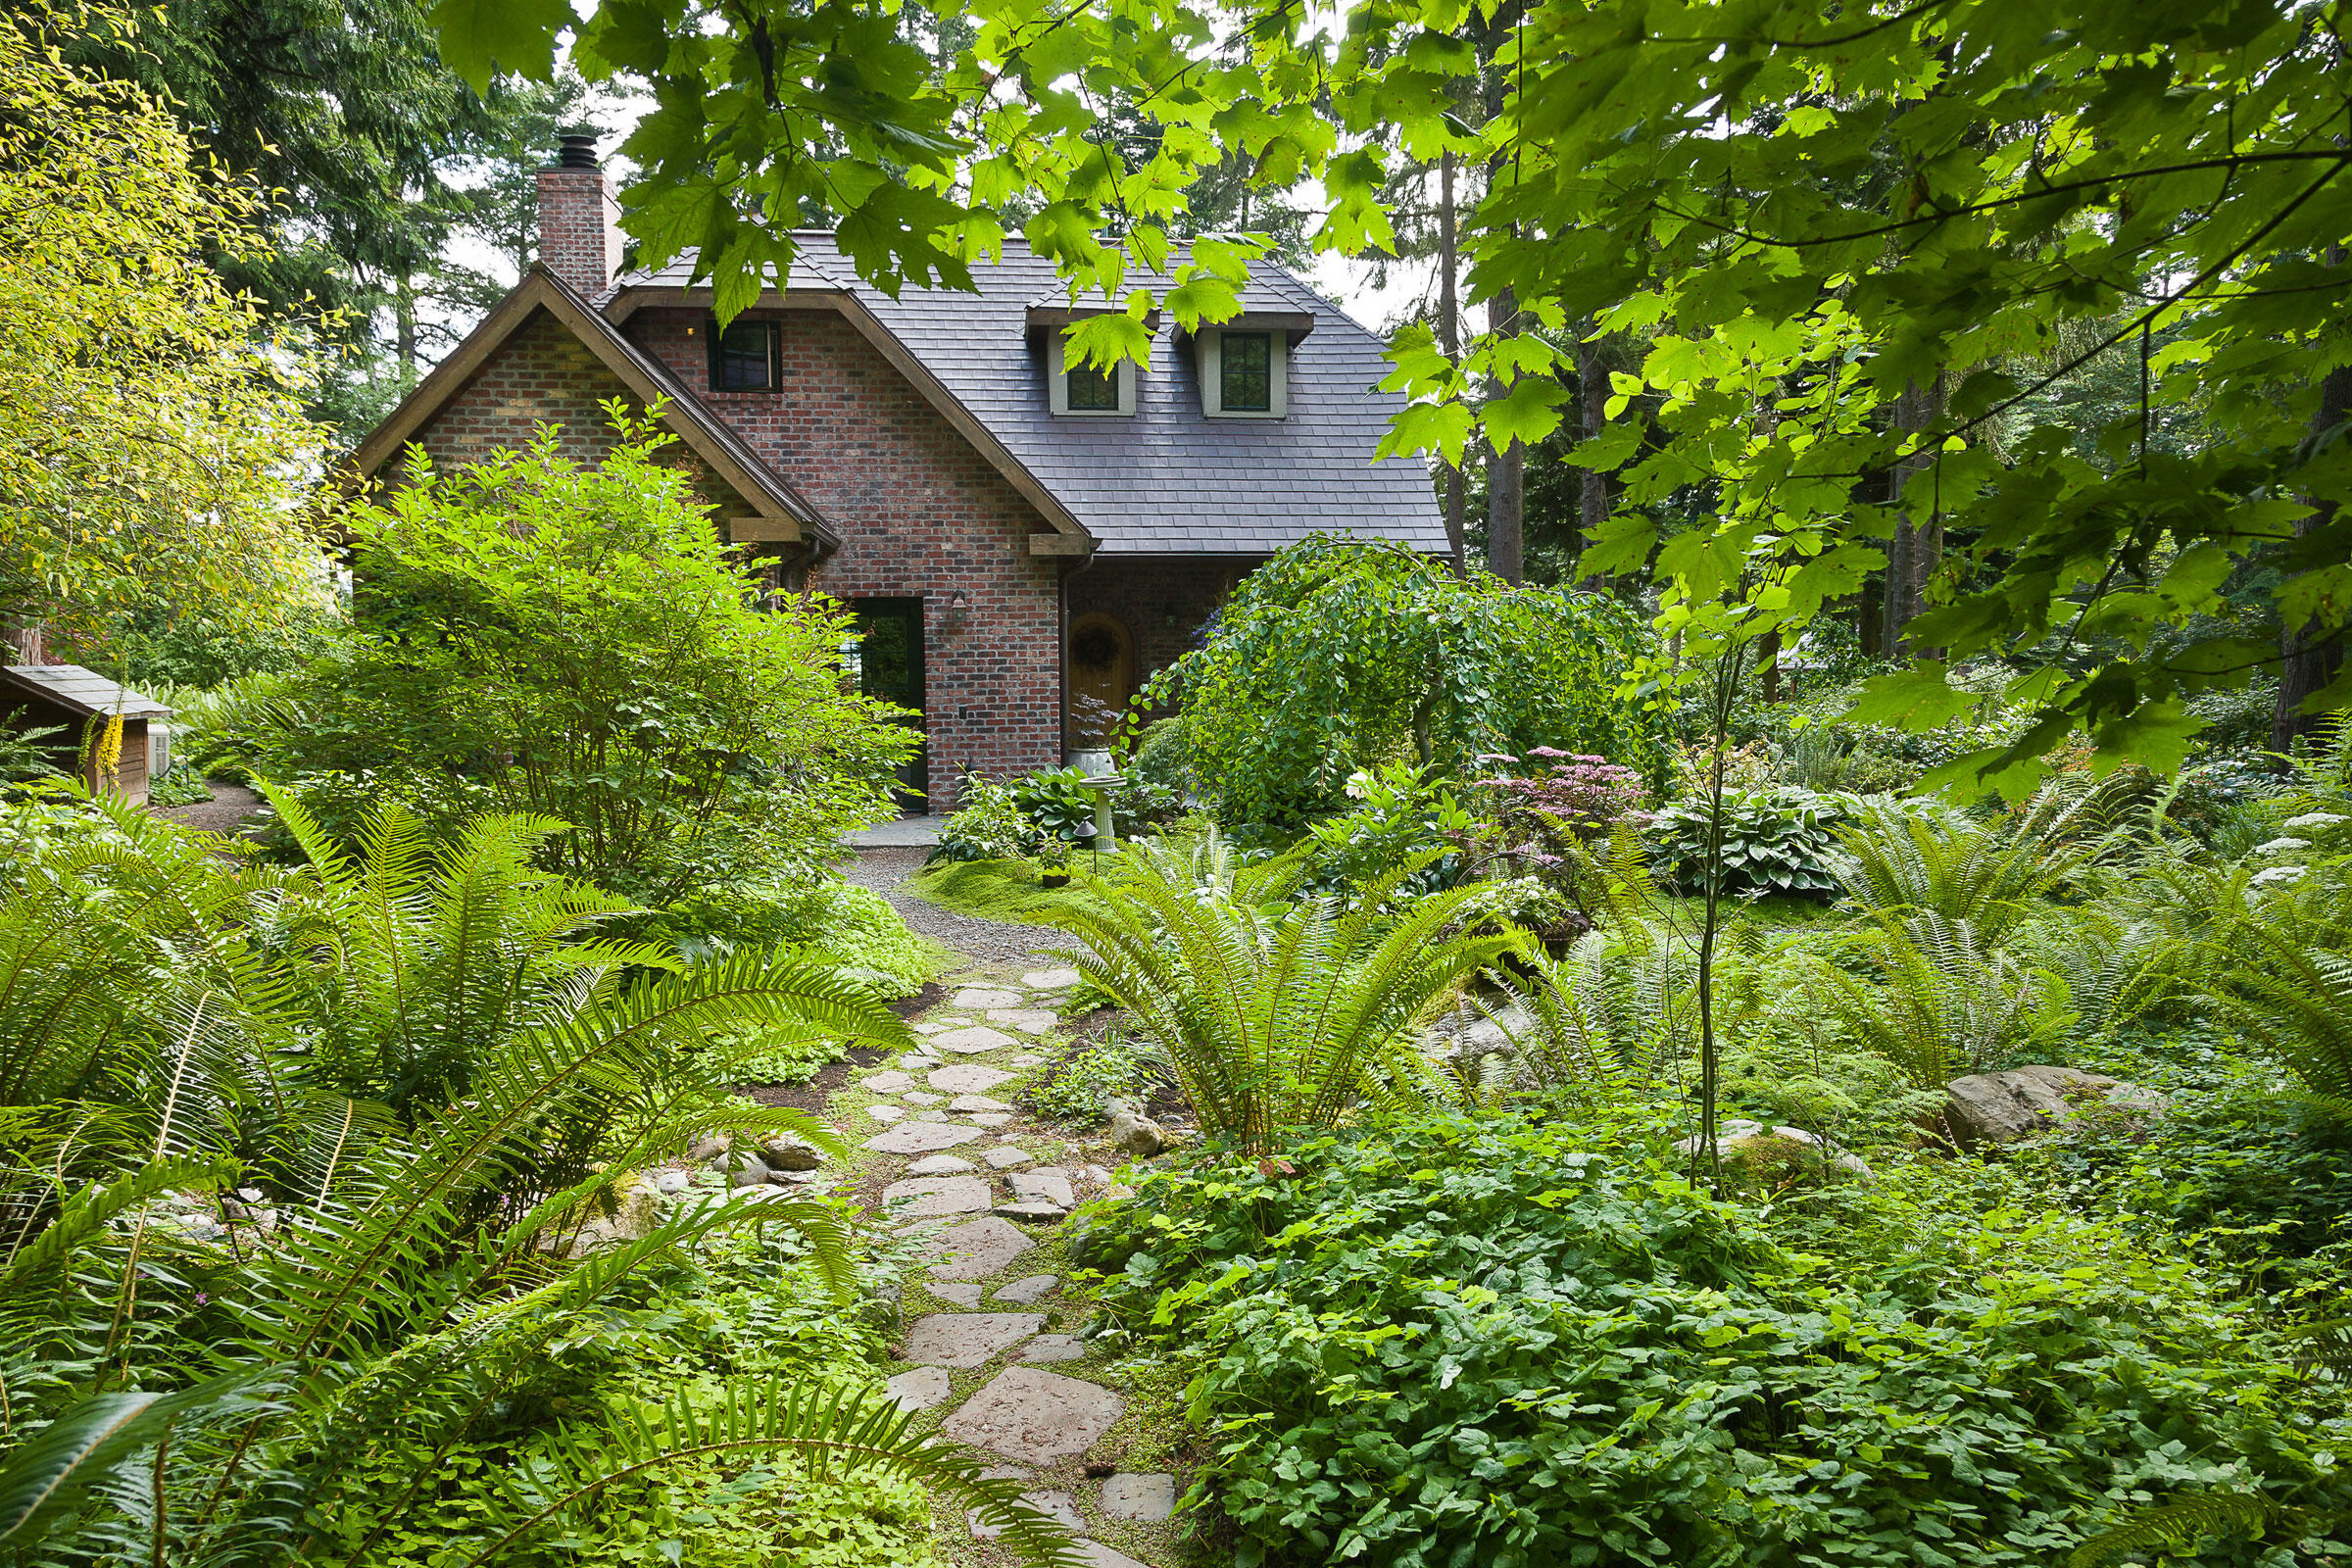 Sword ferns, Vancouveria, and redwood sorrel flank a flagstone path at a home in Bow, Washington. Mark Turner